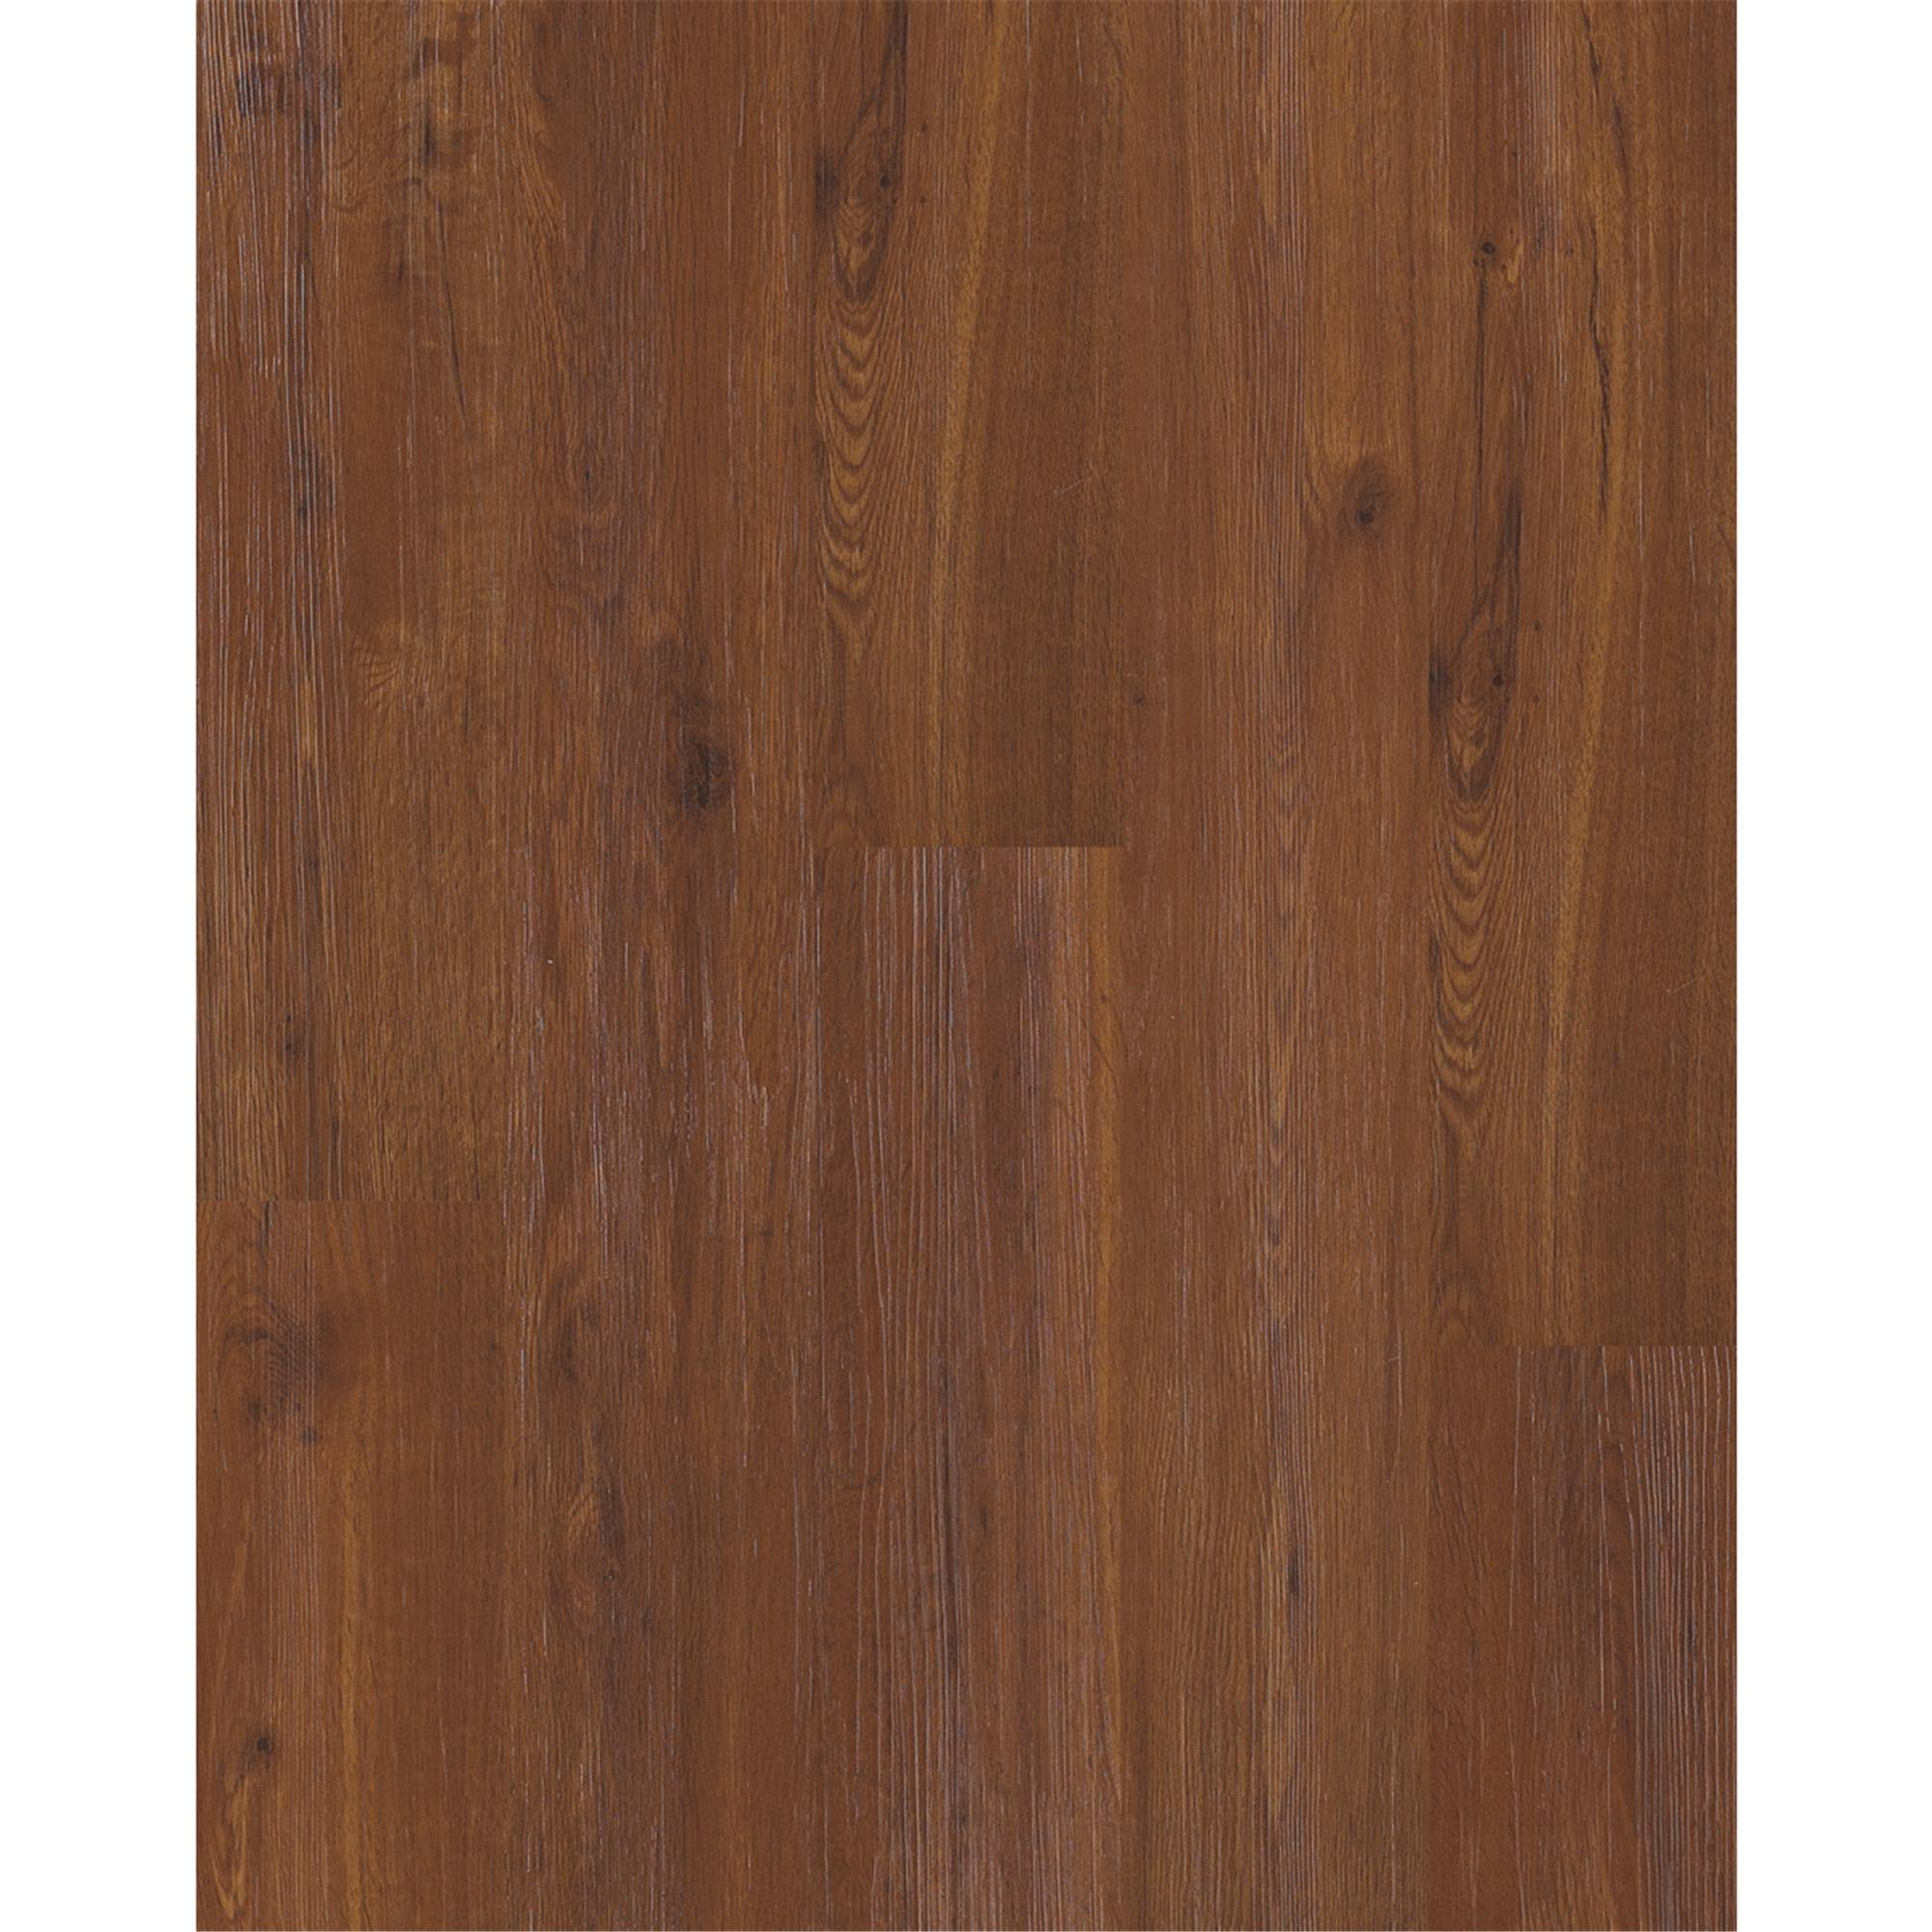 SHAW Signal Mountain, Ruby Falls Best Luxury Vinyl Floor Plank